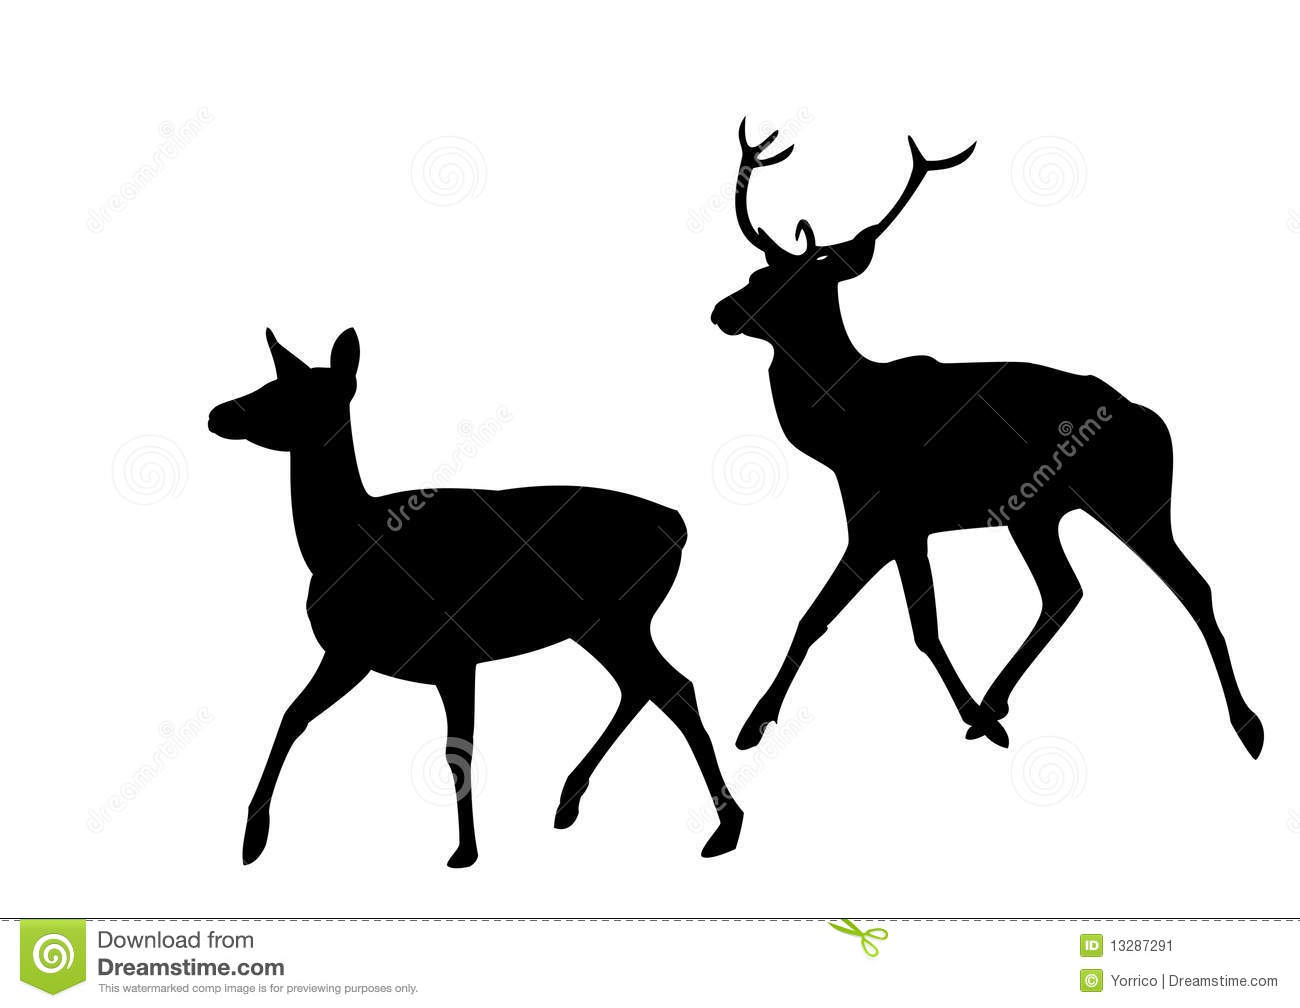 Antlerguitar Vector as well Px Colourbox in addition Deer Mountain furthermore Deer In Woods Clipart also Silhouette Deer Background Red Moon Large Dark. on deer antler silhouette